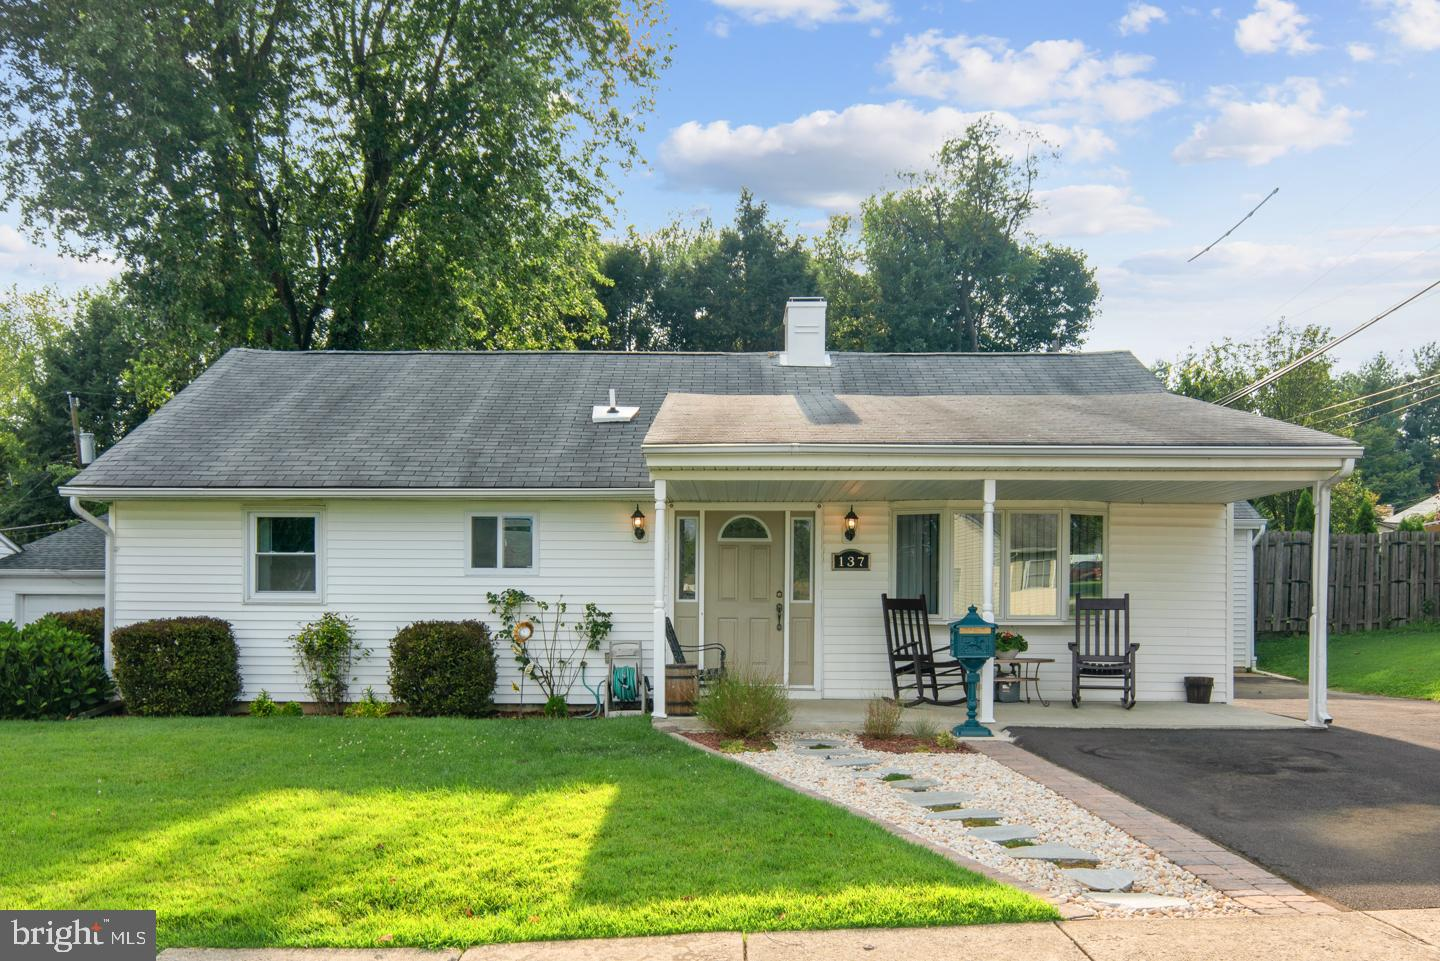 137 ANDOVER ROAD, FAIRLESS HILLS, PA 19030